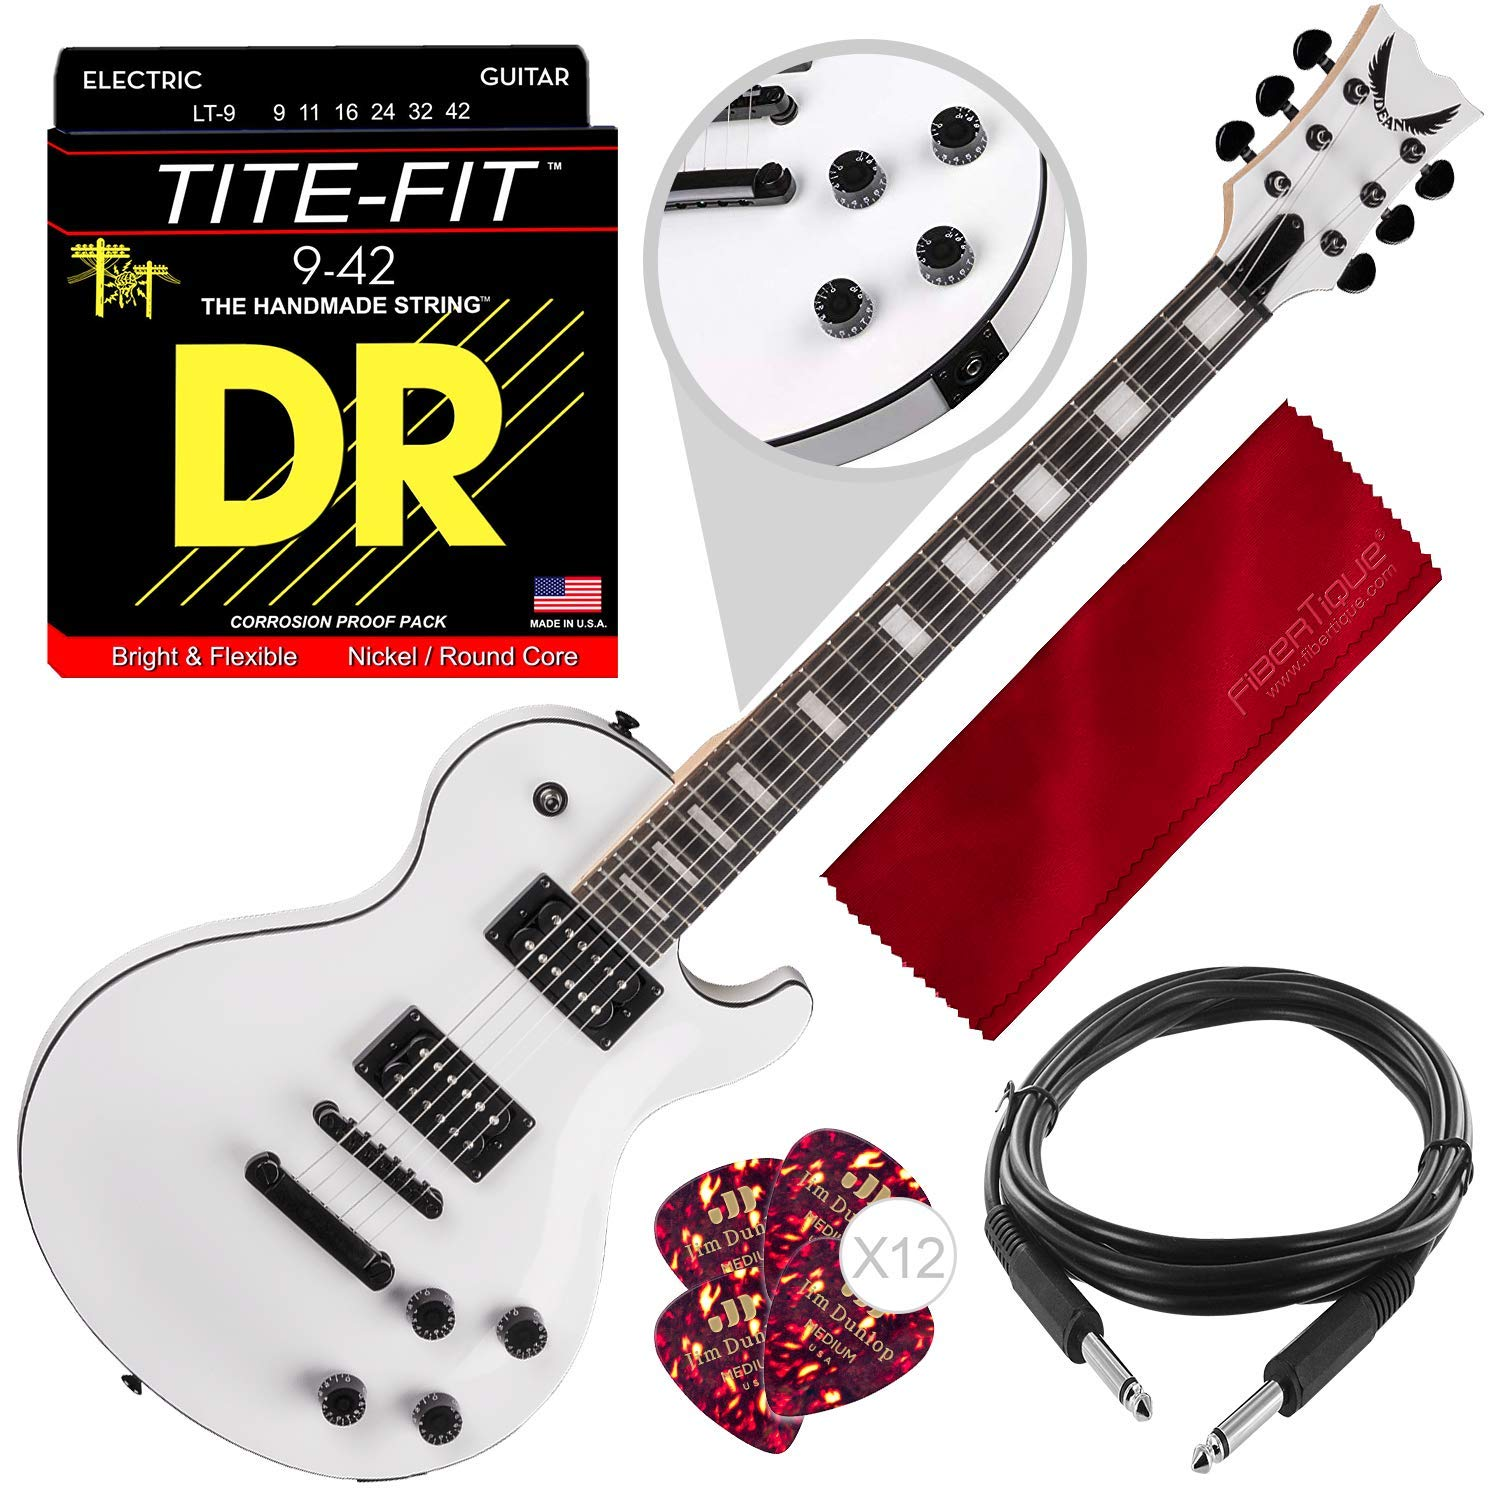 Cheap Dean TBX CWH Thoroughbred X Solid-Body Electric Guitar Classic White with Guitar Picks Strings and Accessory Bundle Black Friday & Cyber Monday 2019